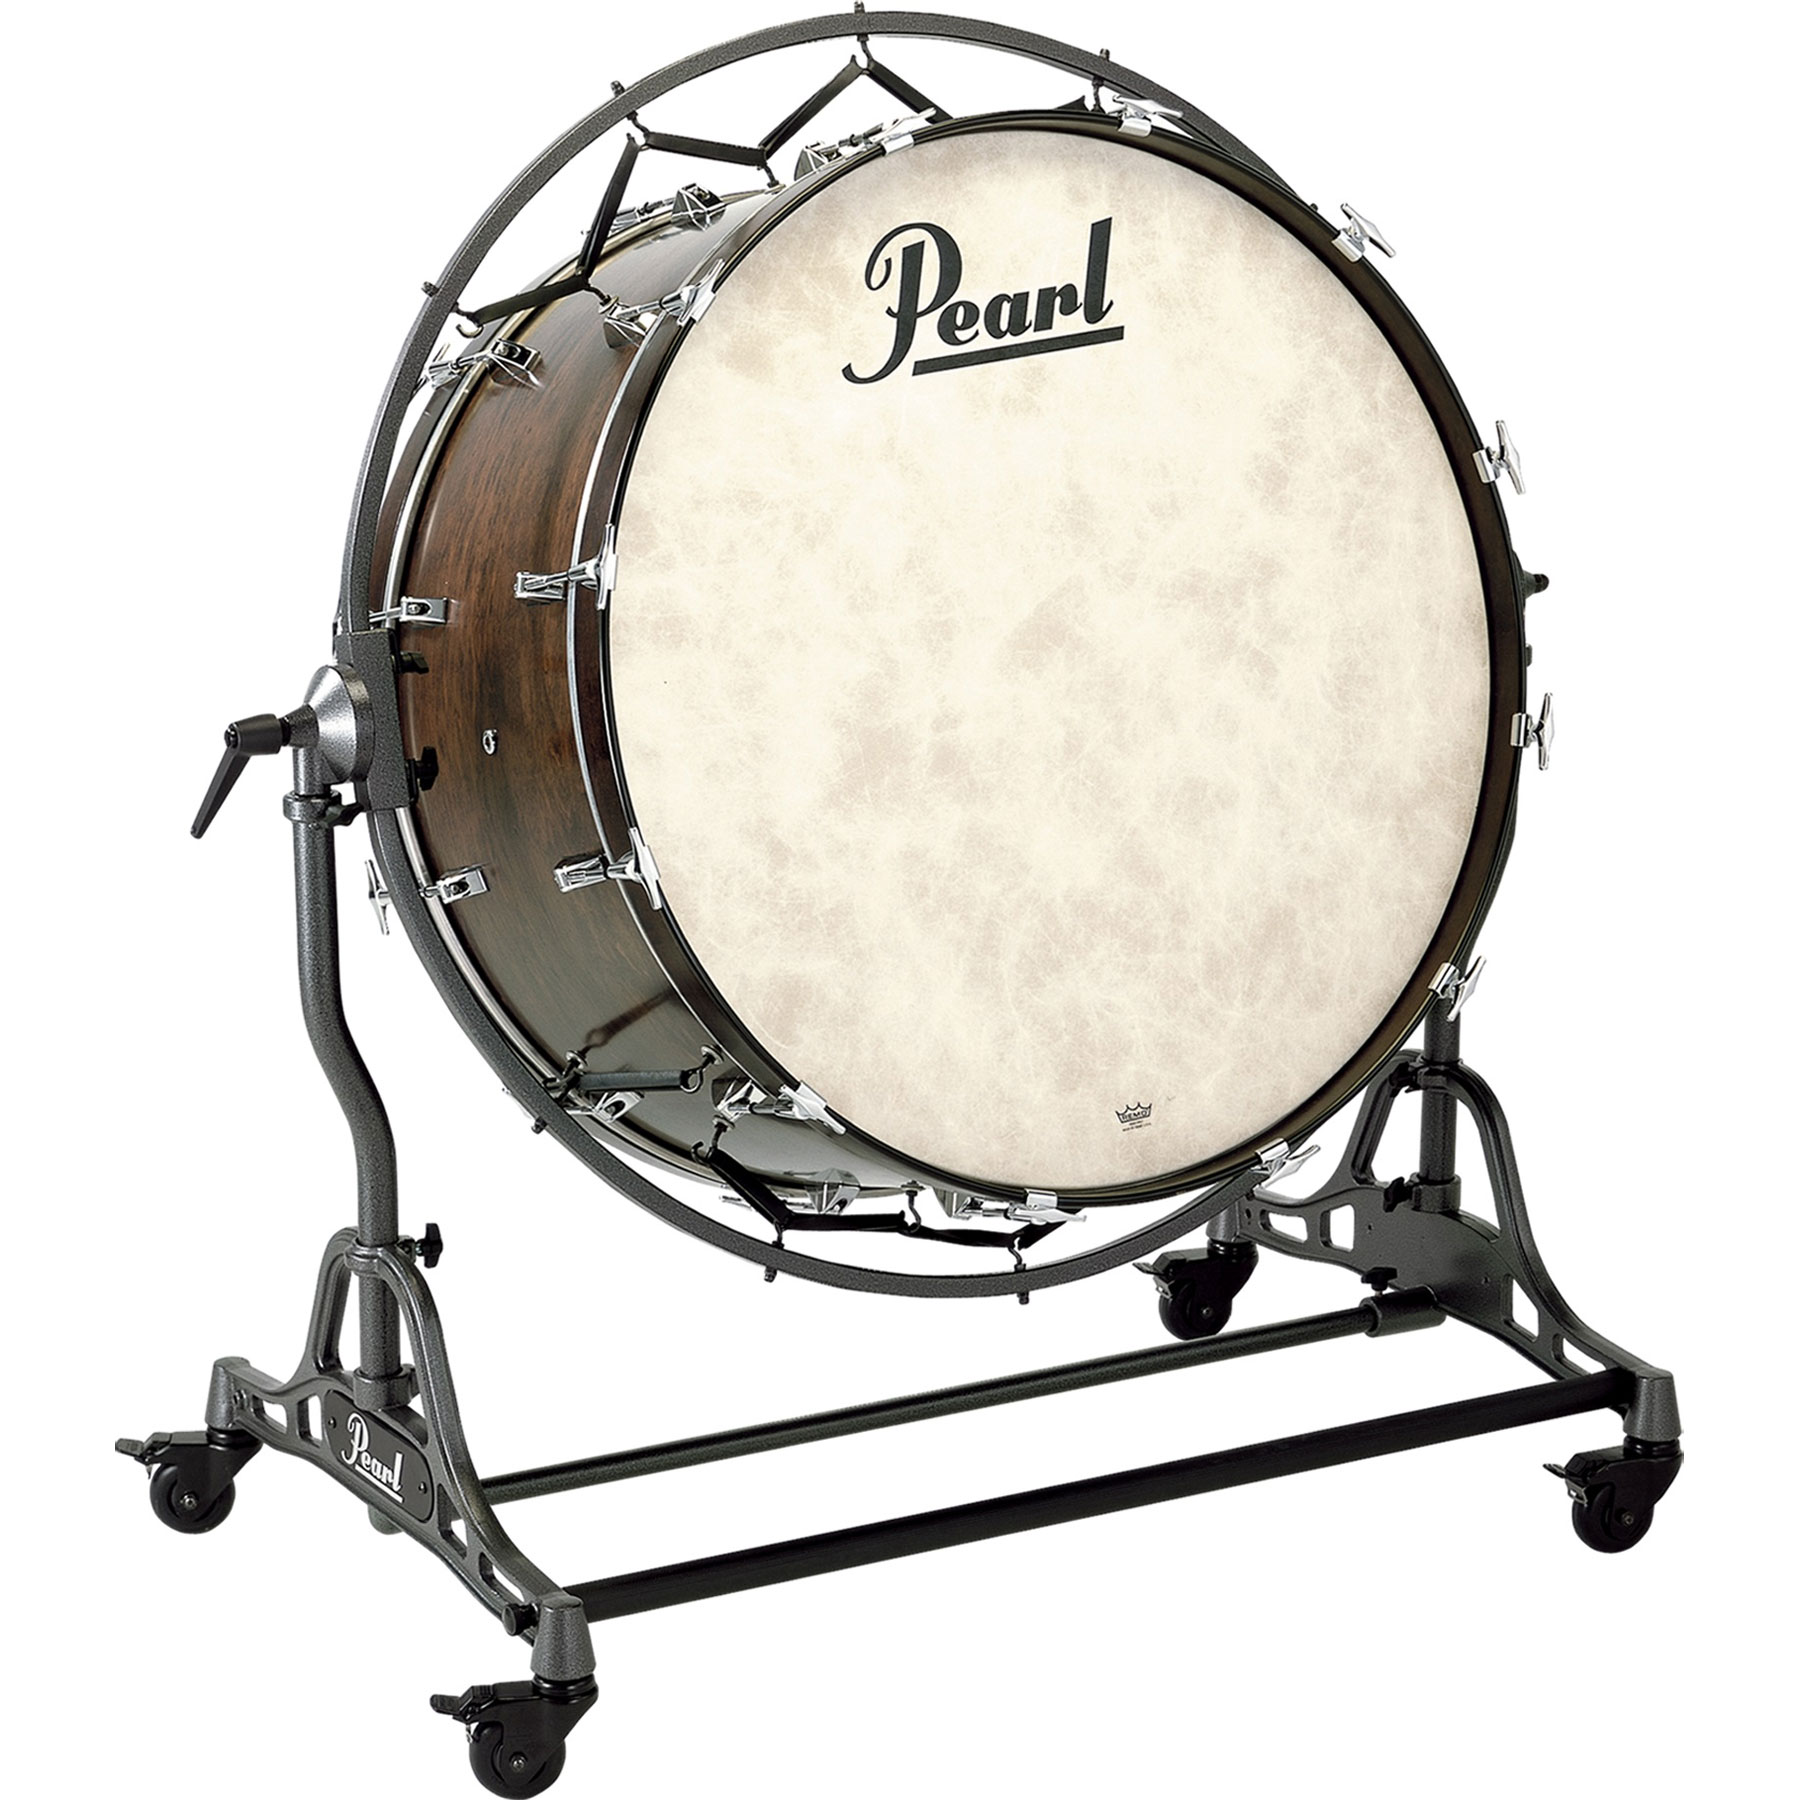 "Pearl 28"" (Diameter) x 14"" (Deep) Philharmonic African Mahogany Concert Bass Drum with STBD Stand"